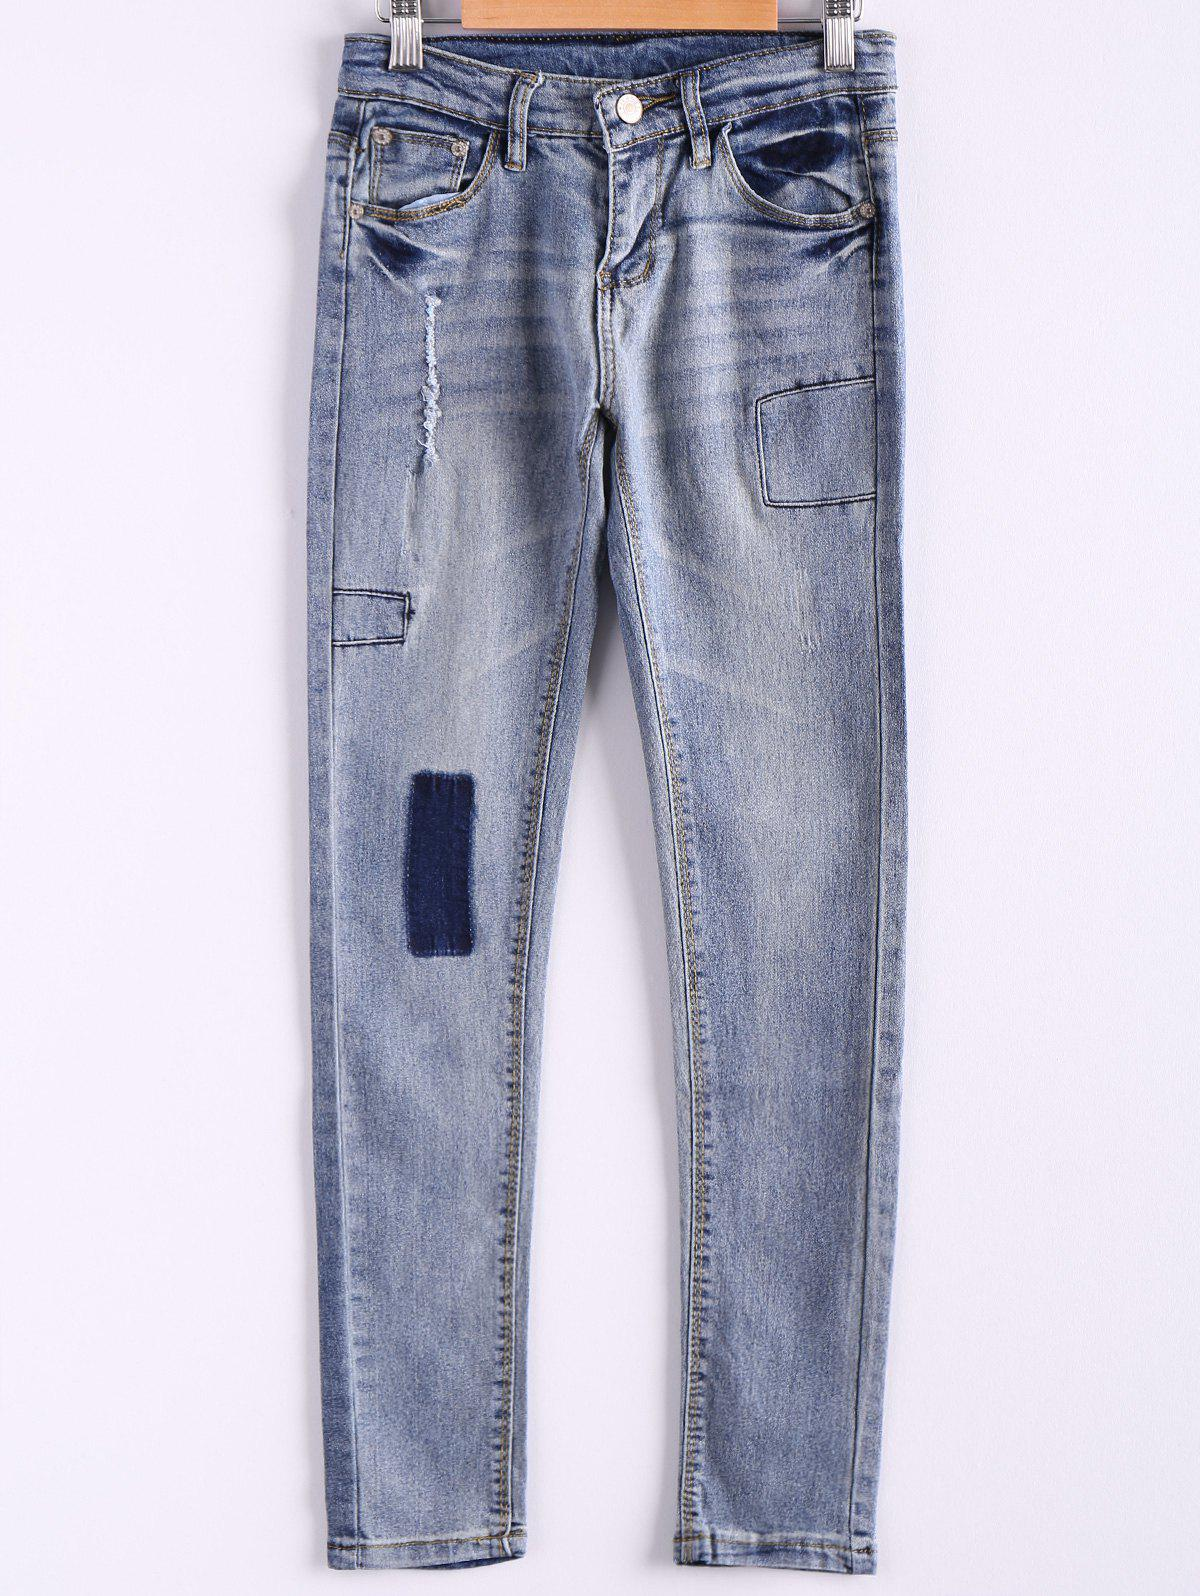 Unique Bleach Wash Pockets Slimming Pencil Jeans